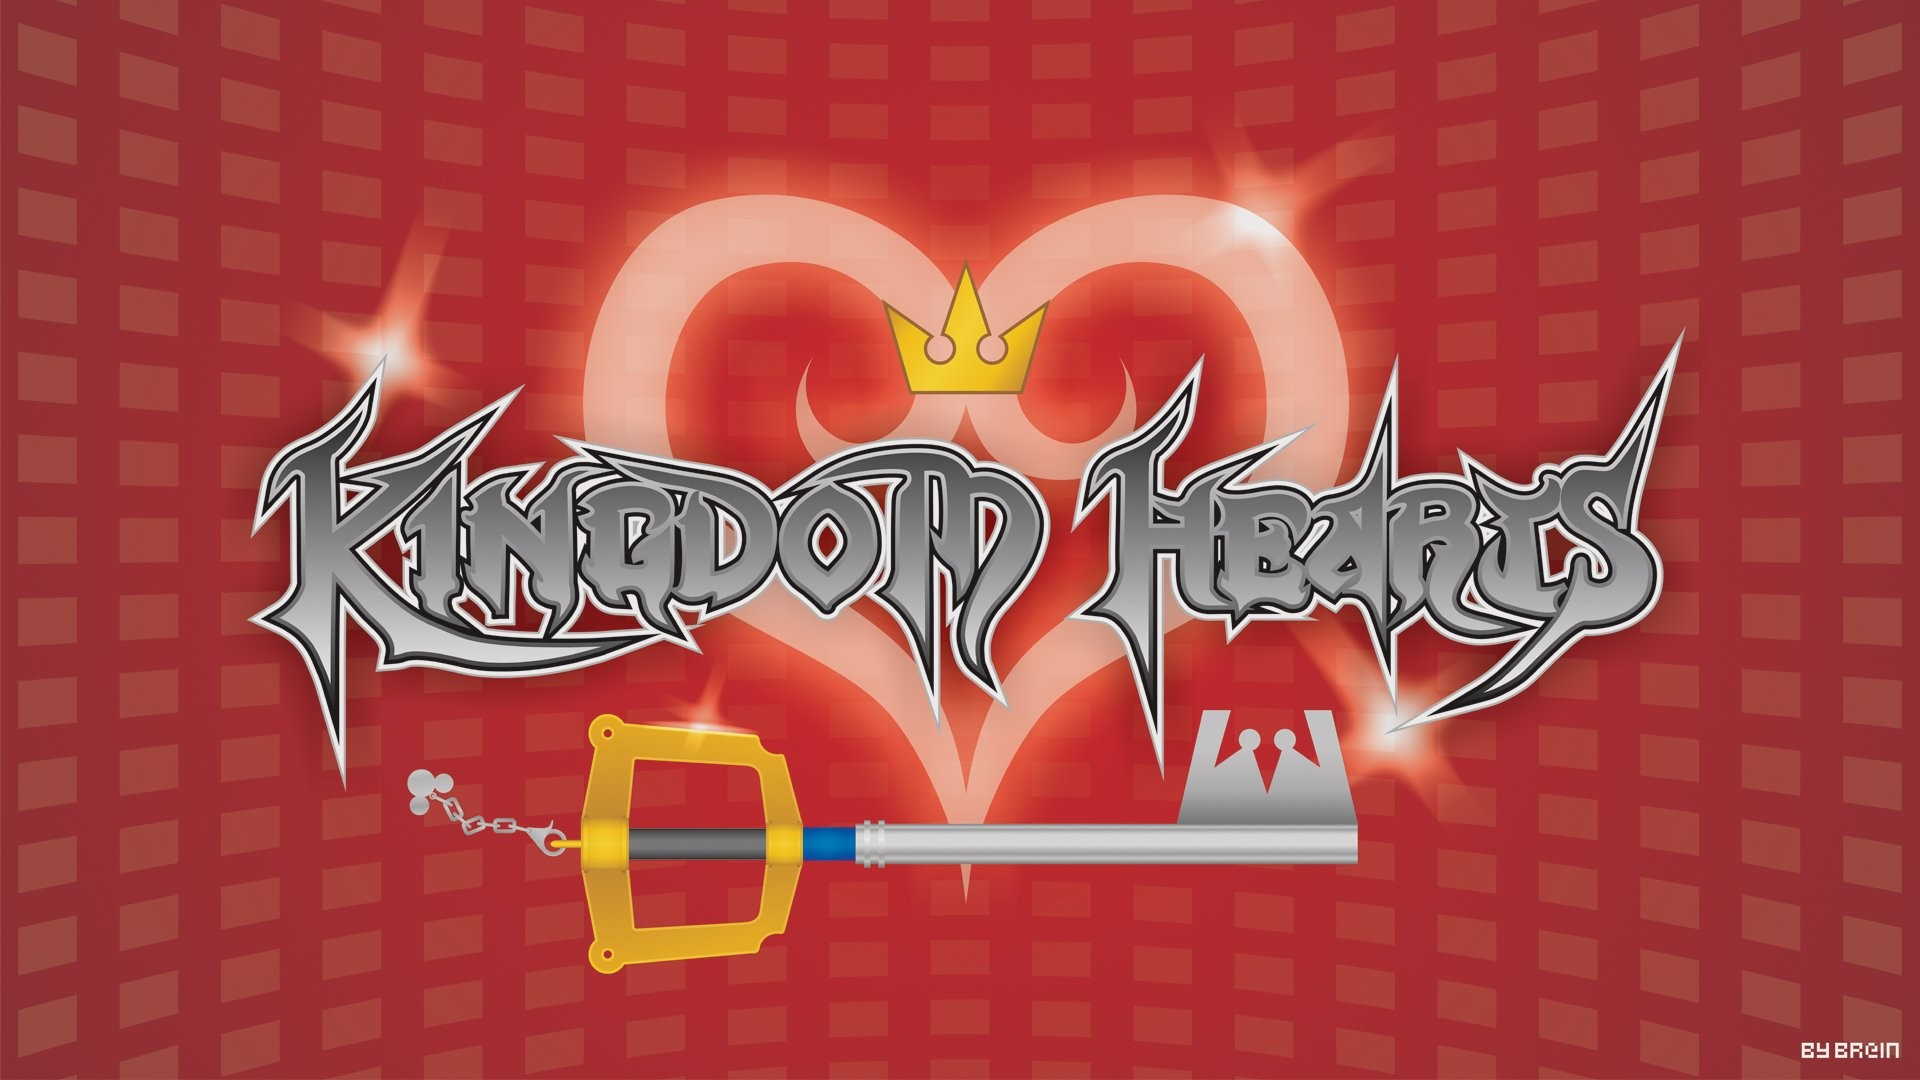 1920x1080 Kingdom Hearts Keyblade 326793 ...